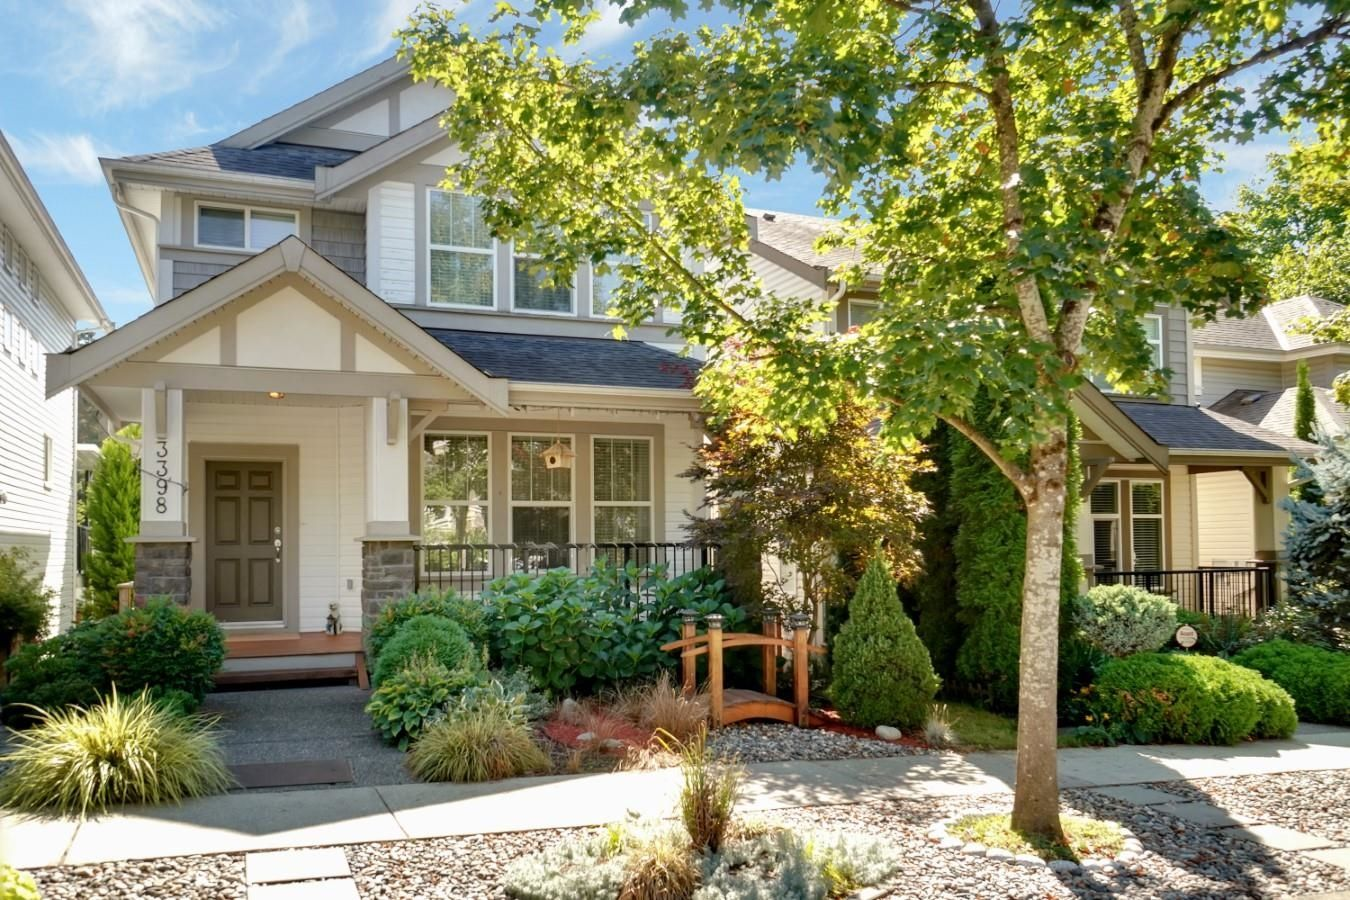 Main Photo: 3398 WILKIE Avenue in Coquitlam: Burke Mountain House for sale : MLS®# R2615131